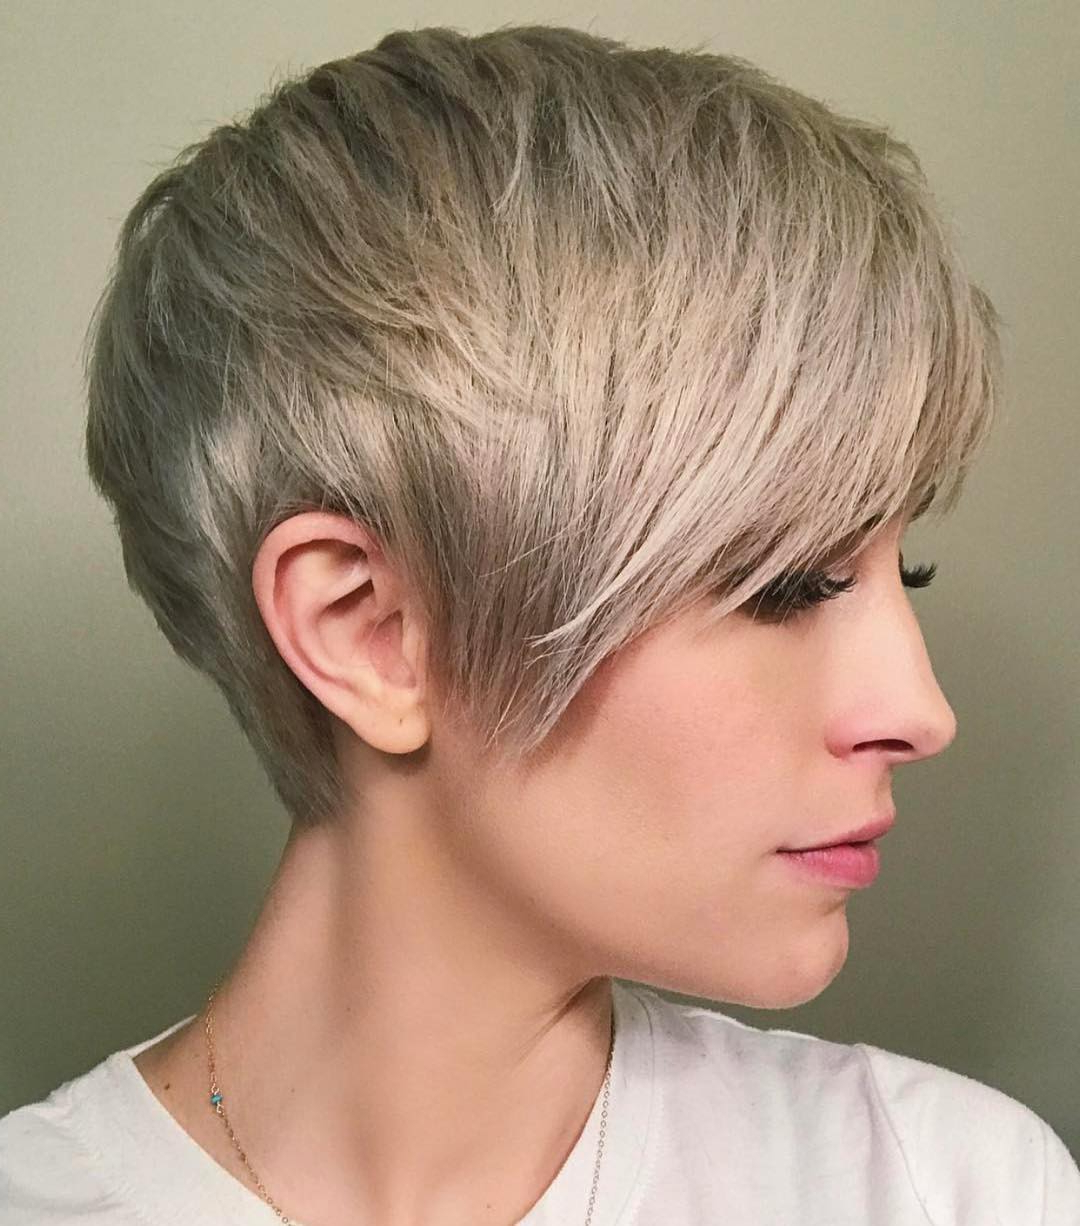 10 Best Short Straight Hairstyle Trends – Women Short Haircut Ideas 2018 Intended For Short Female Hair Cuts (View 3 of 25)